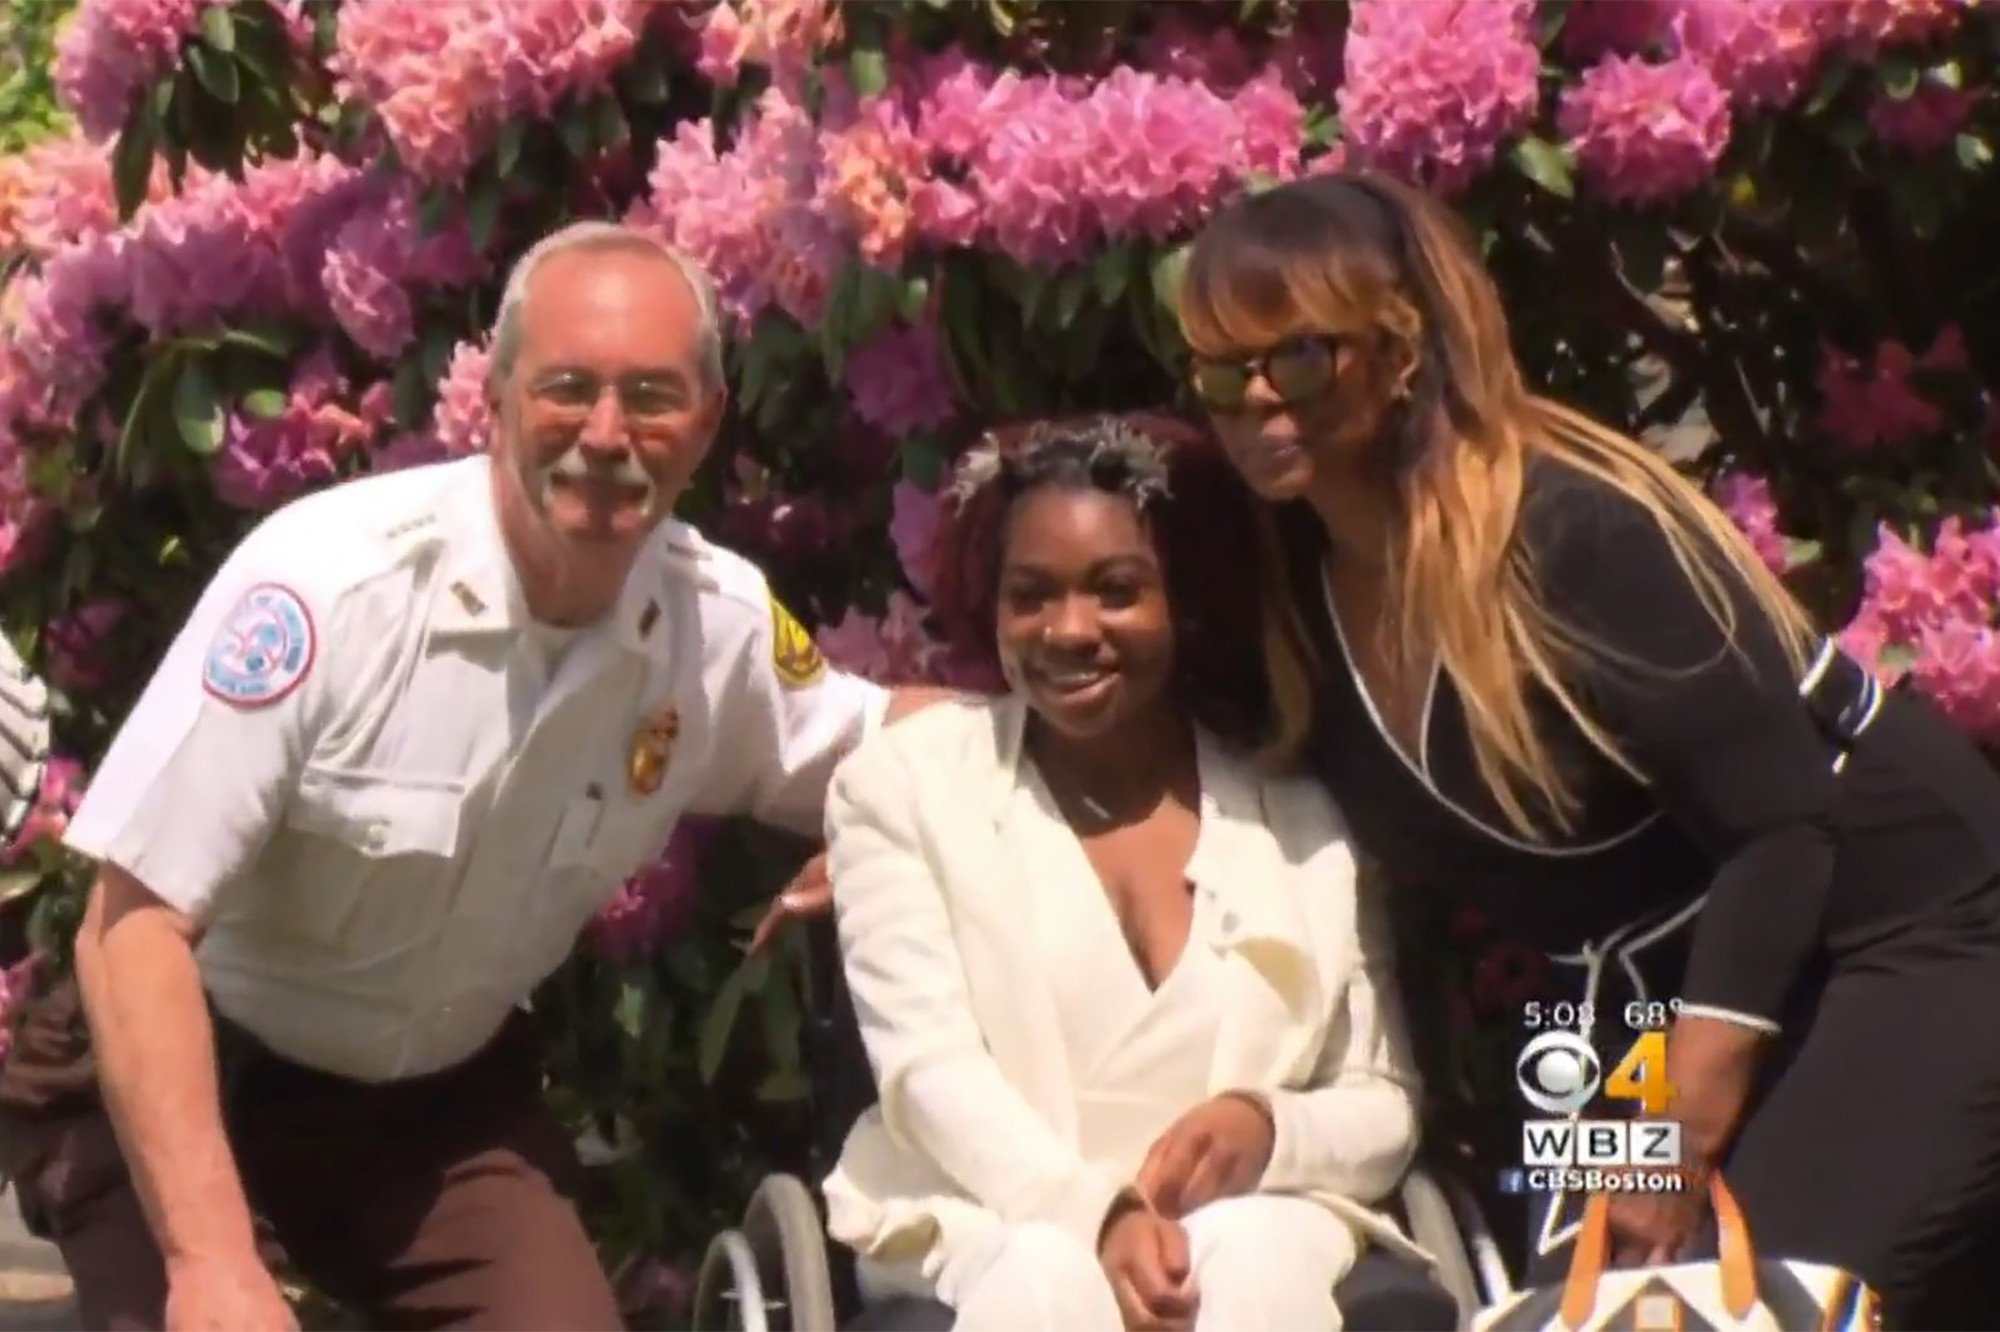 Teen paralyzed by bullet as toddler reunites with hero EMT at graduation